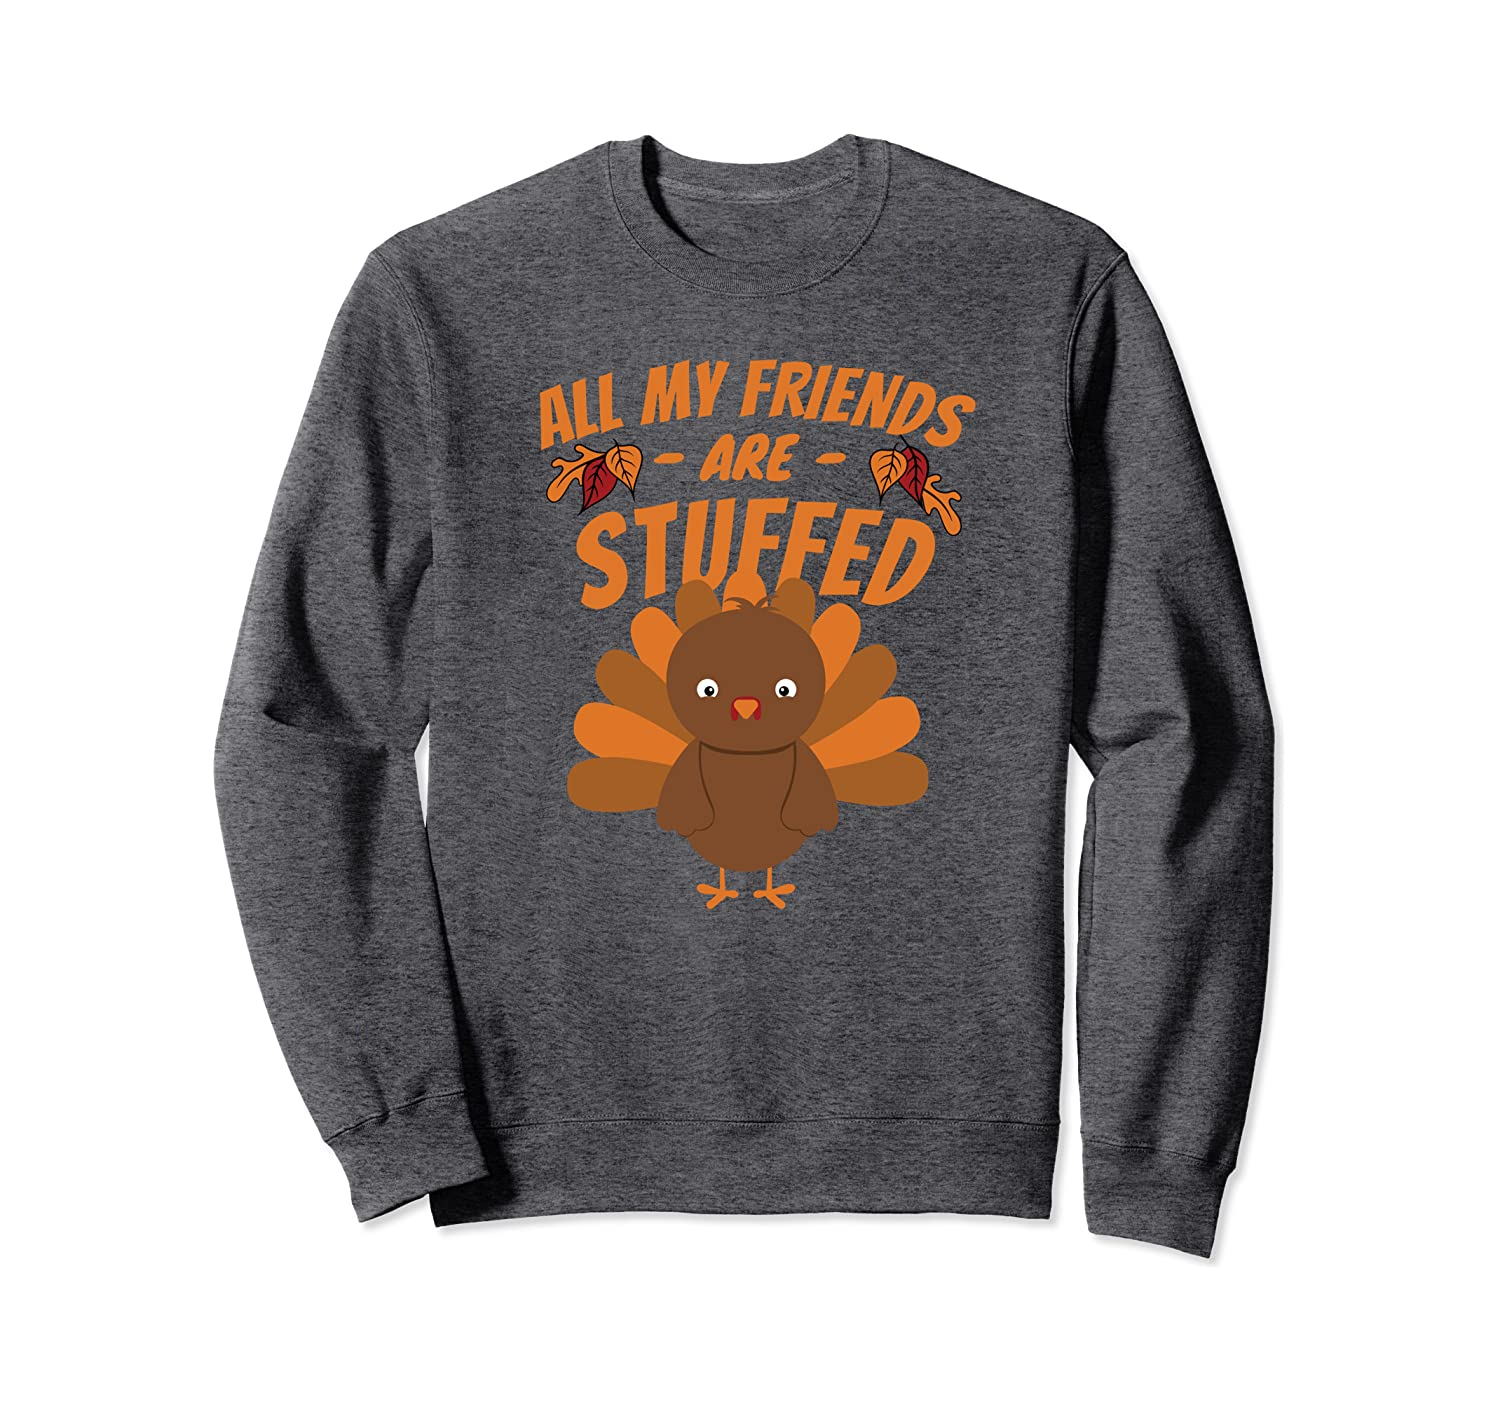 All My Friends Are Stuffed – Funny Thanksgiving Day Design Sweatshirt